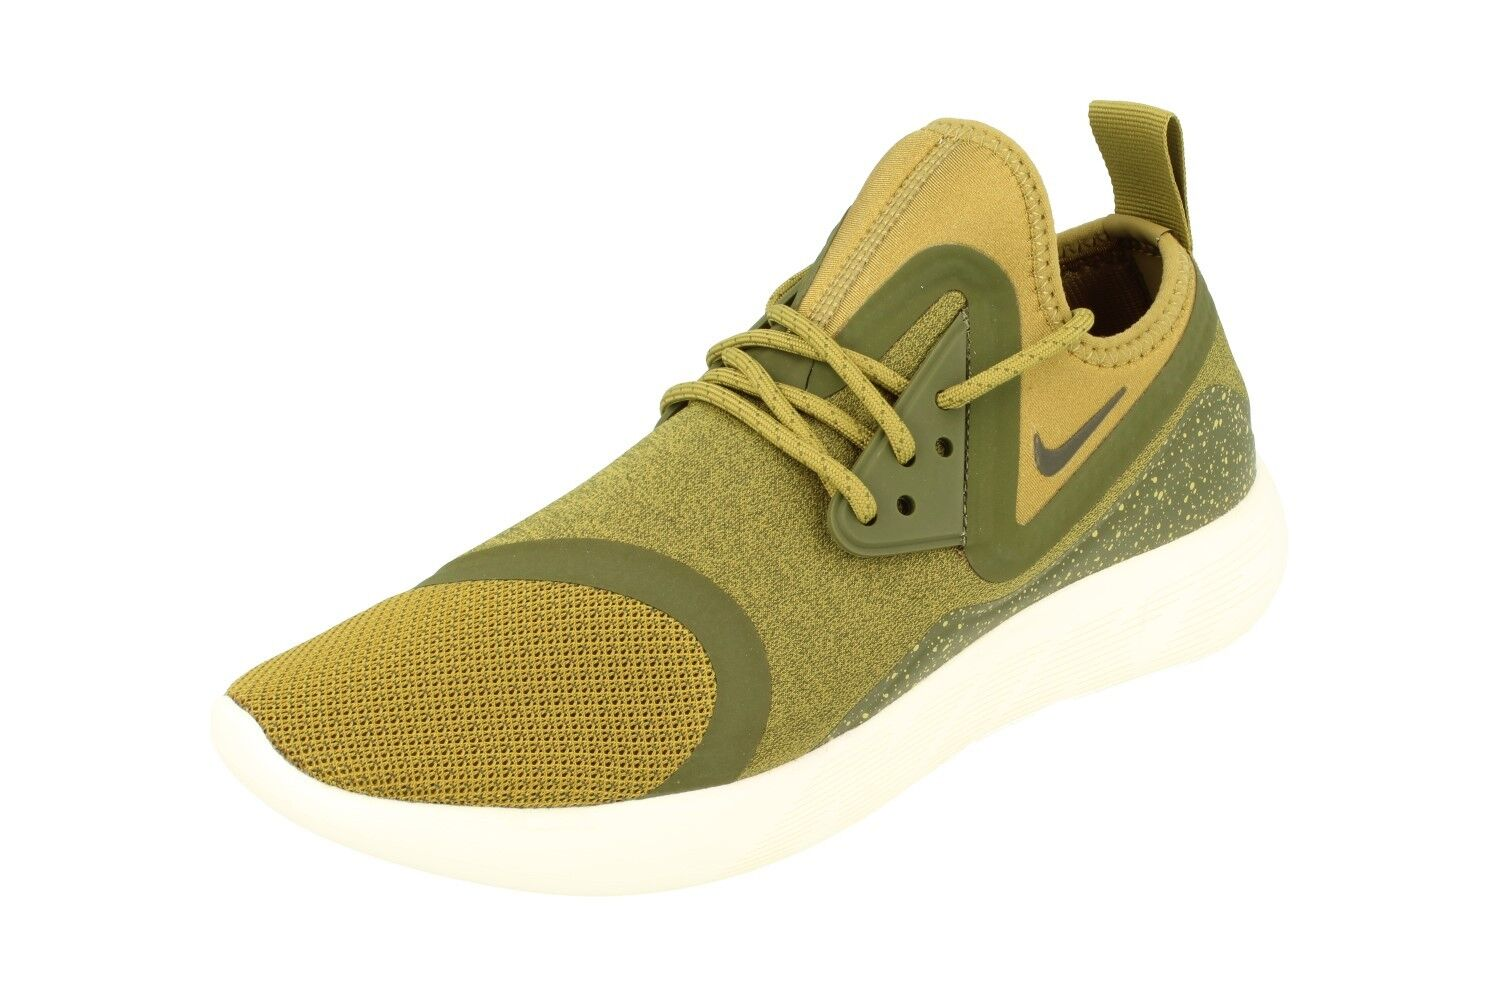 Nike Lunarcharge Essential Mens Running Trainers 923619 Sneakers Shoes 300 Comfortable and good-looking